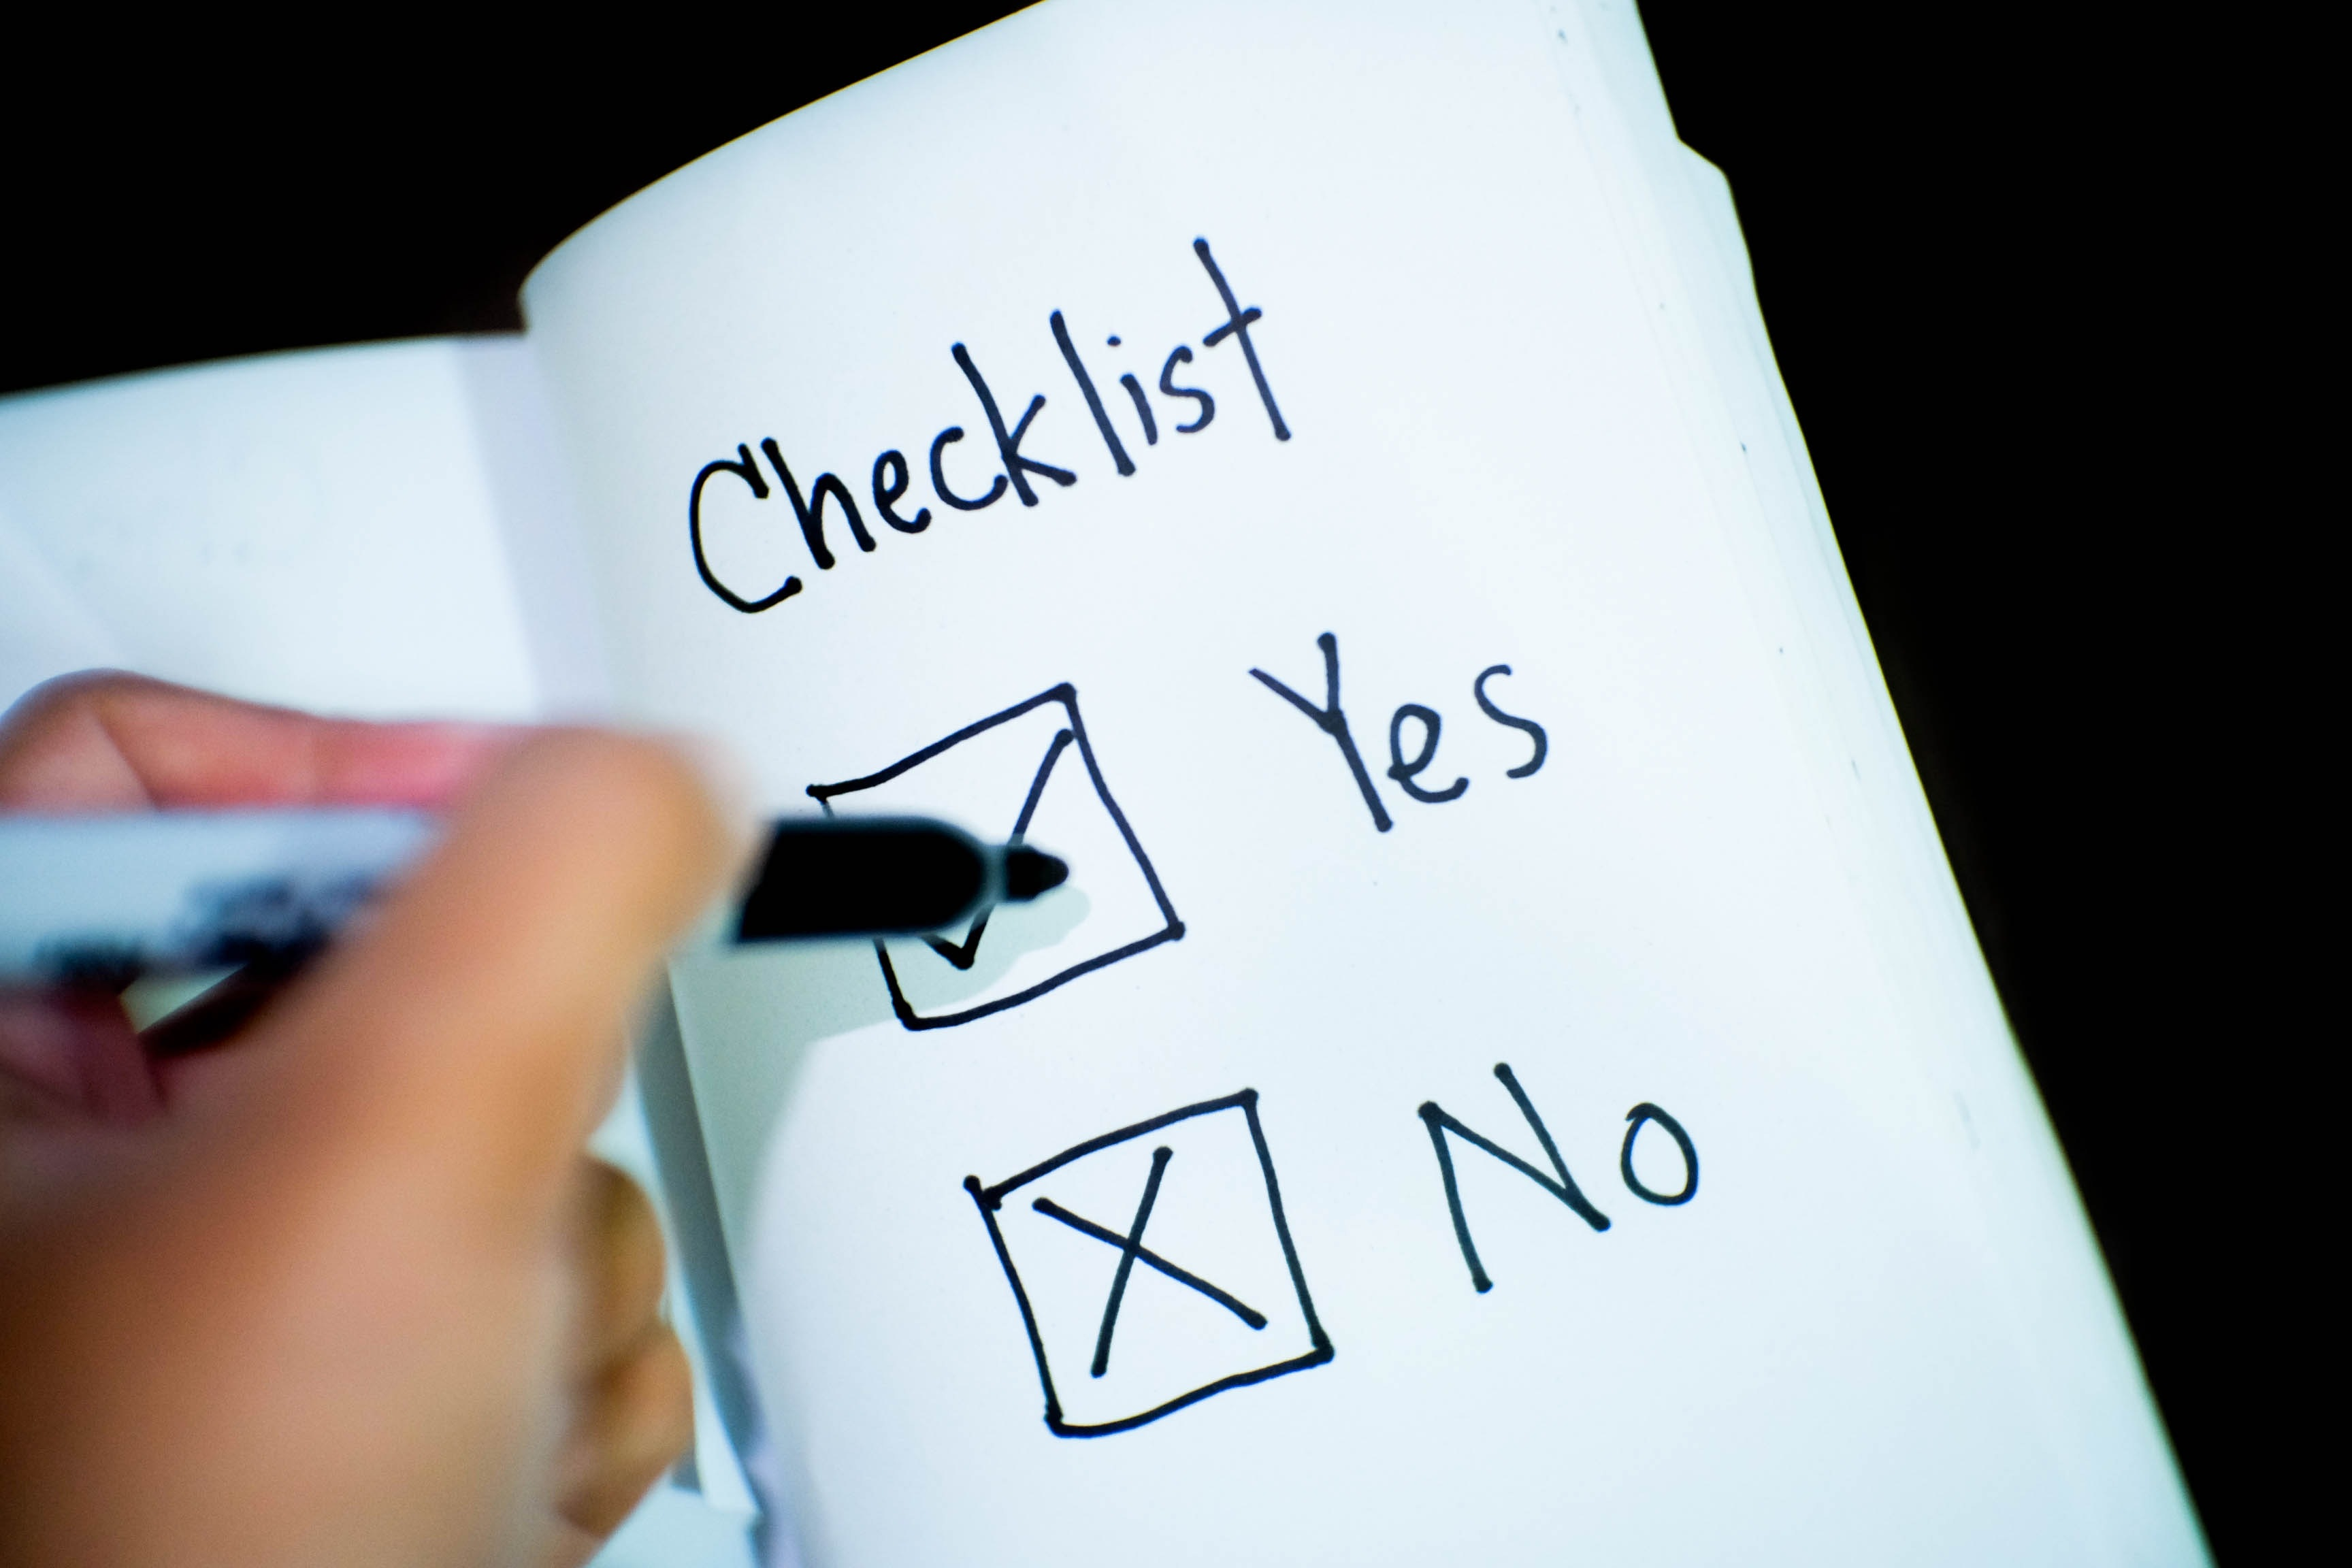 Banking business checklist 416322